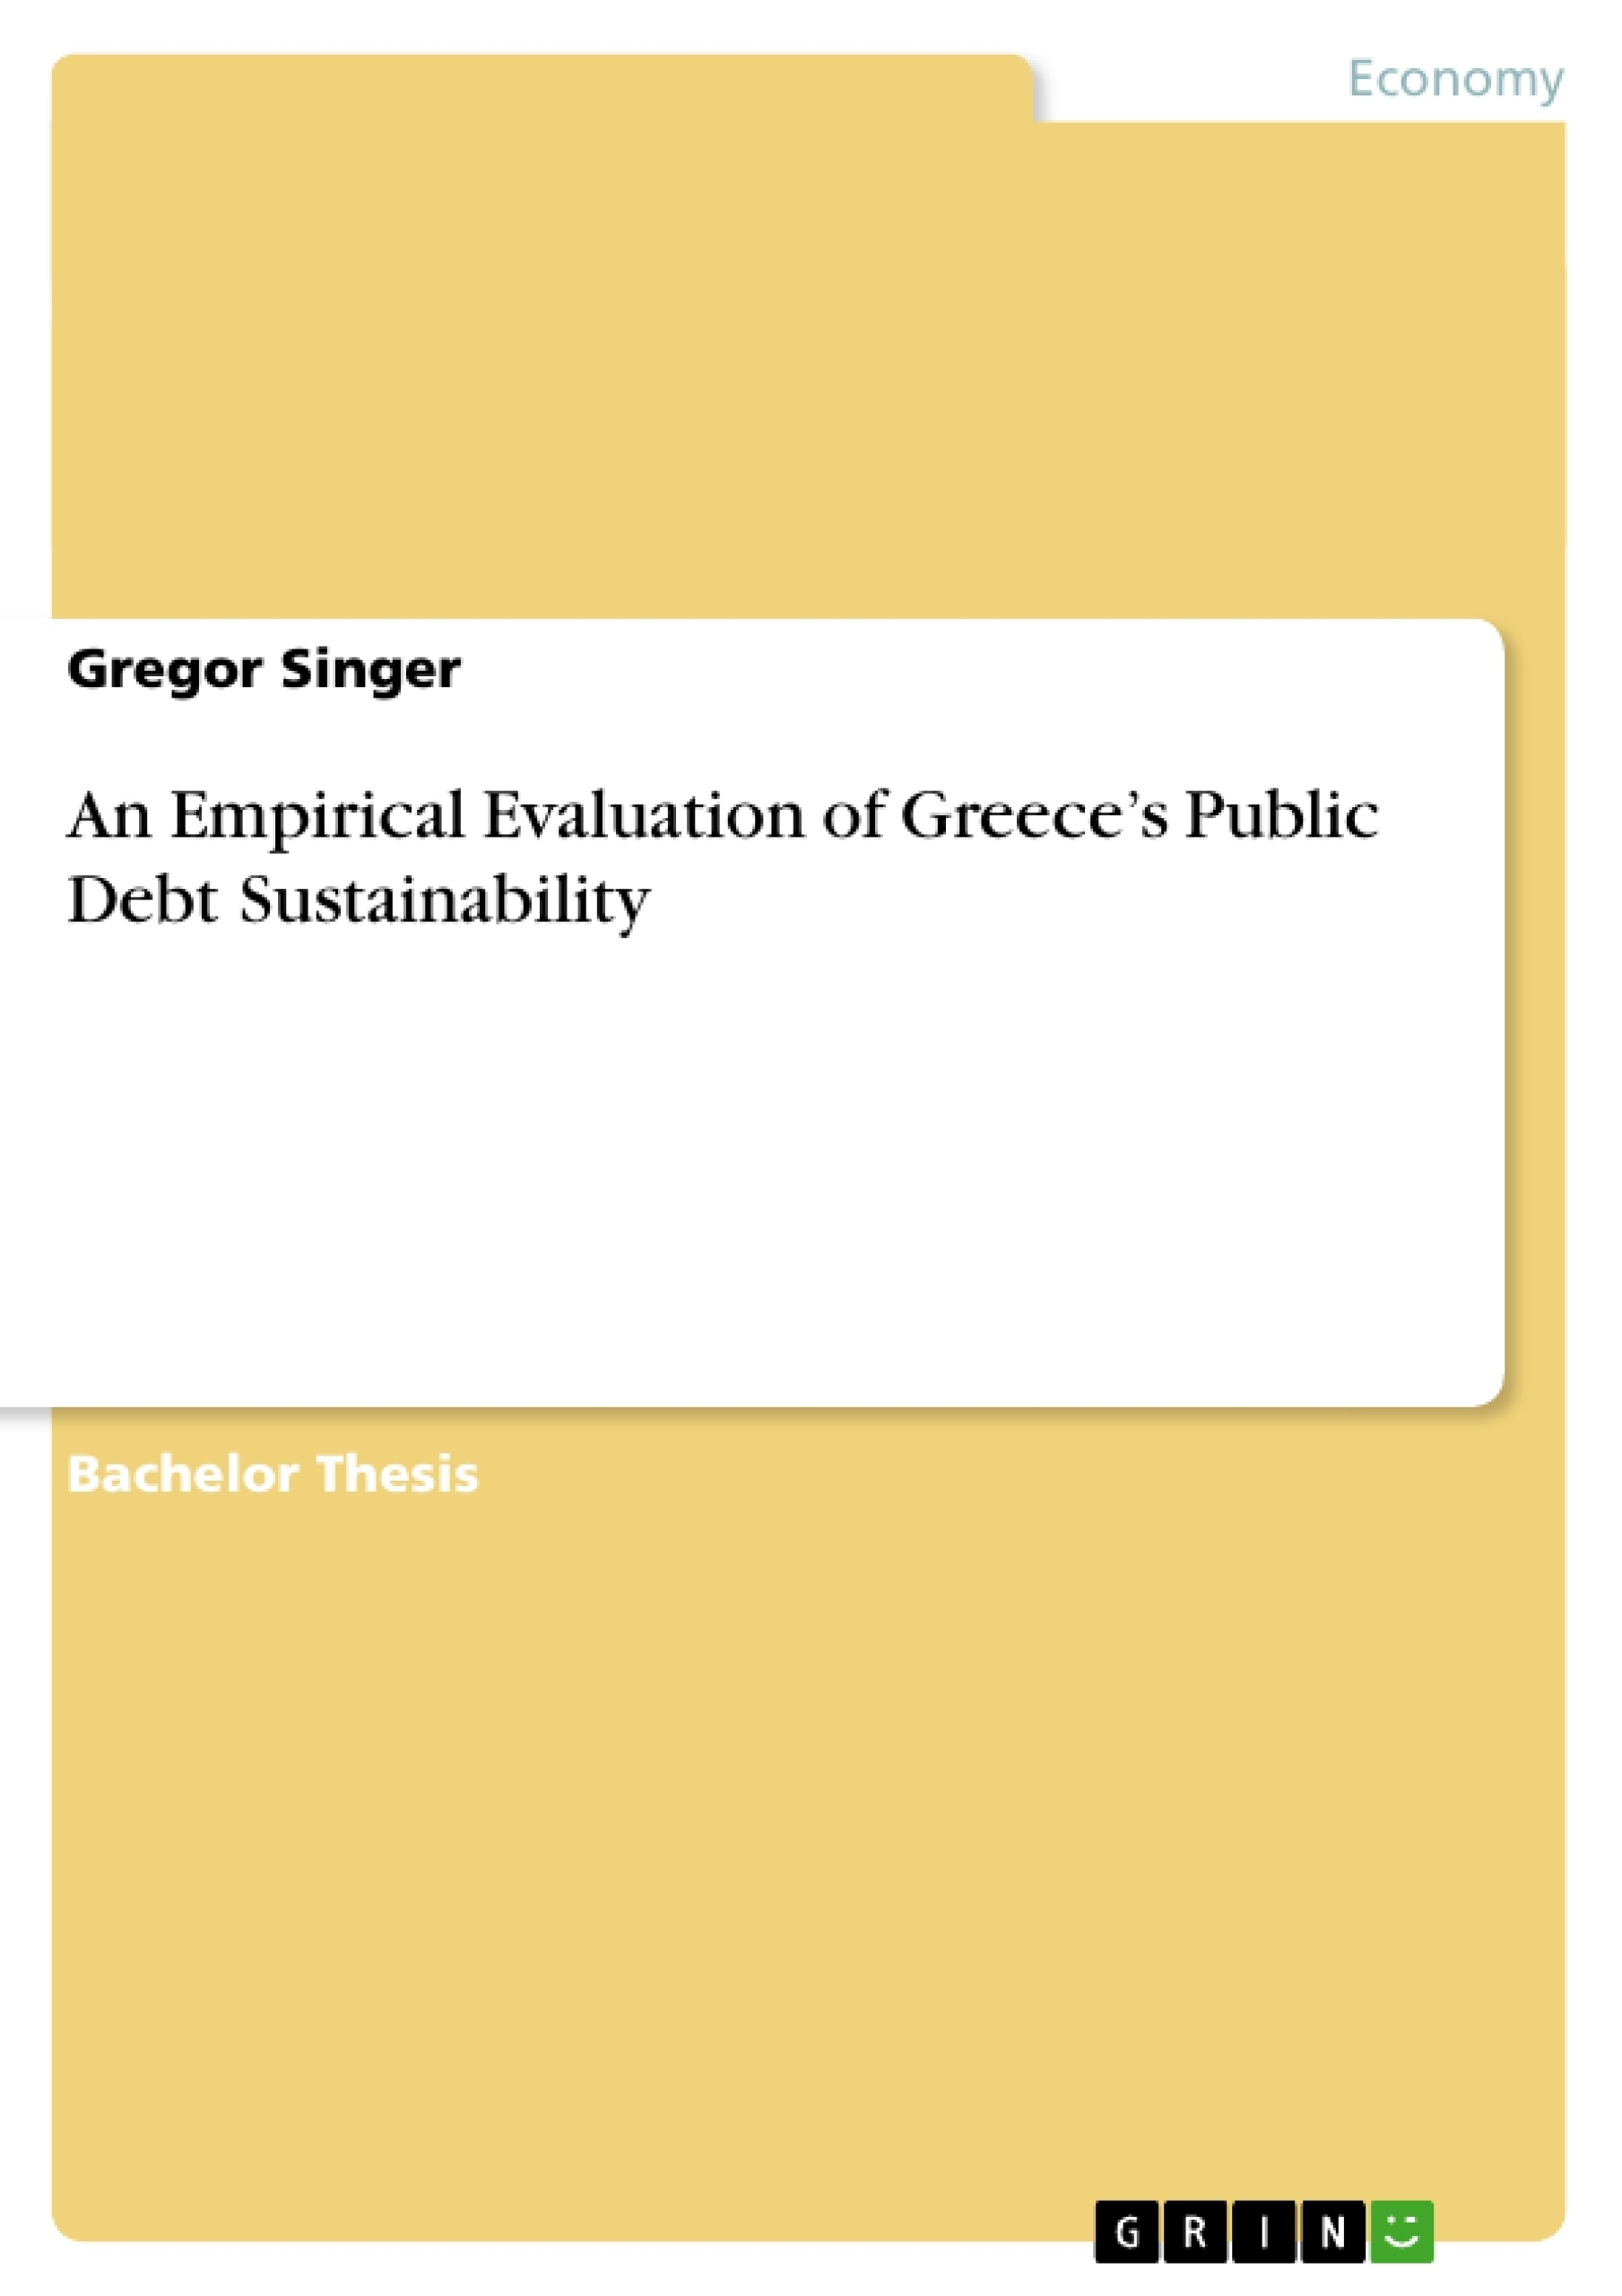 thesis on debt management